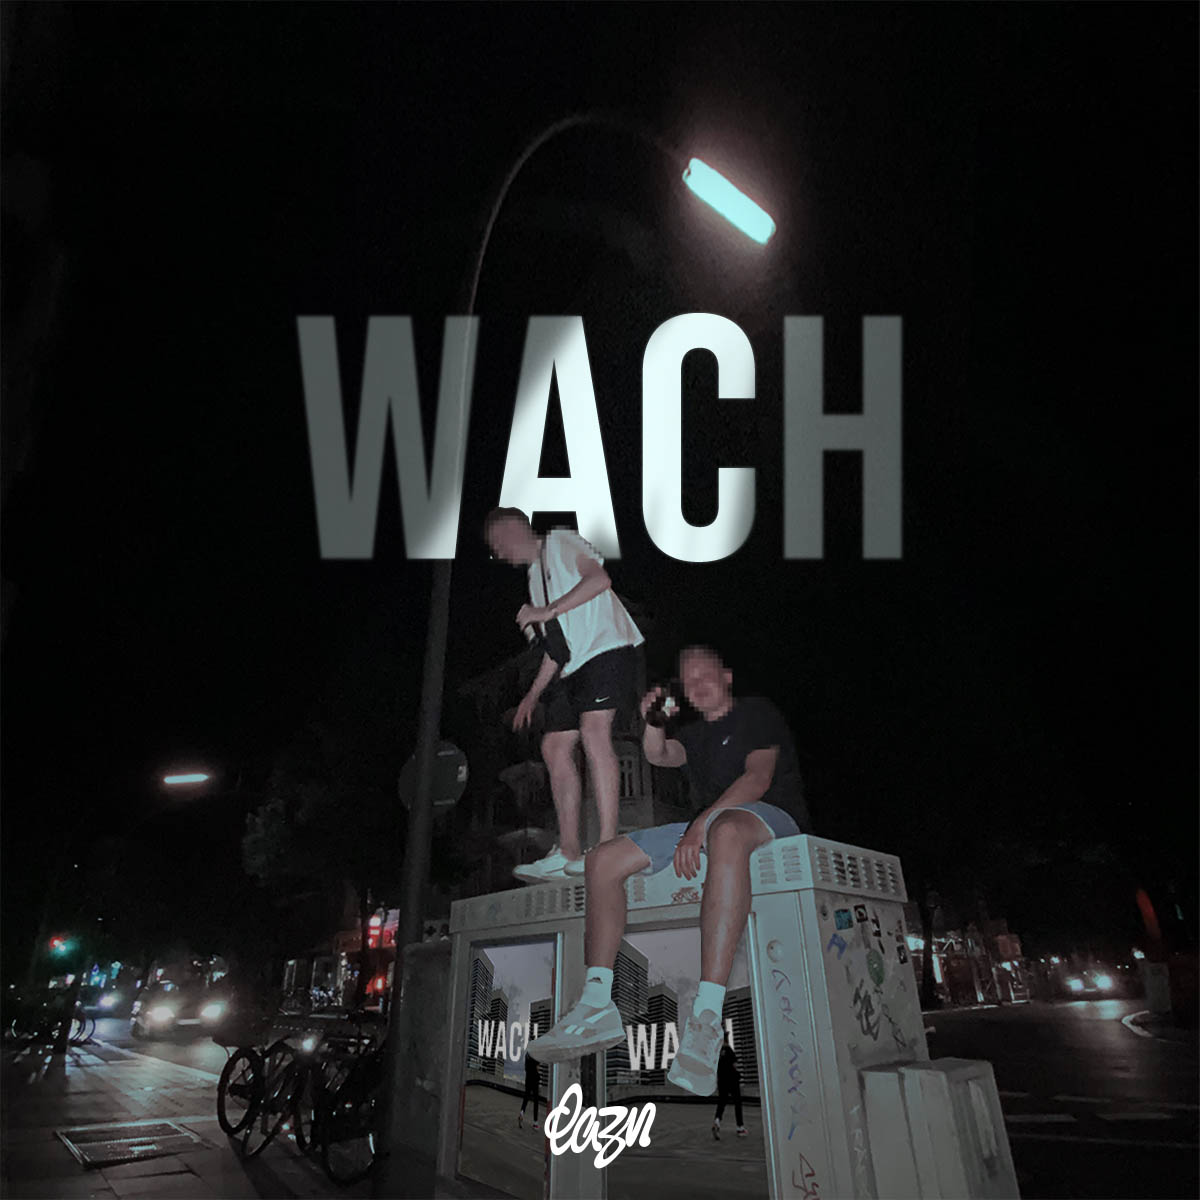 Upcoming: LAZN - WACH (Video)